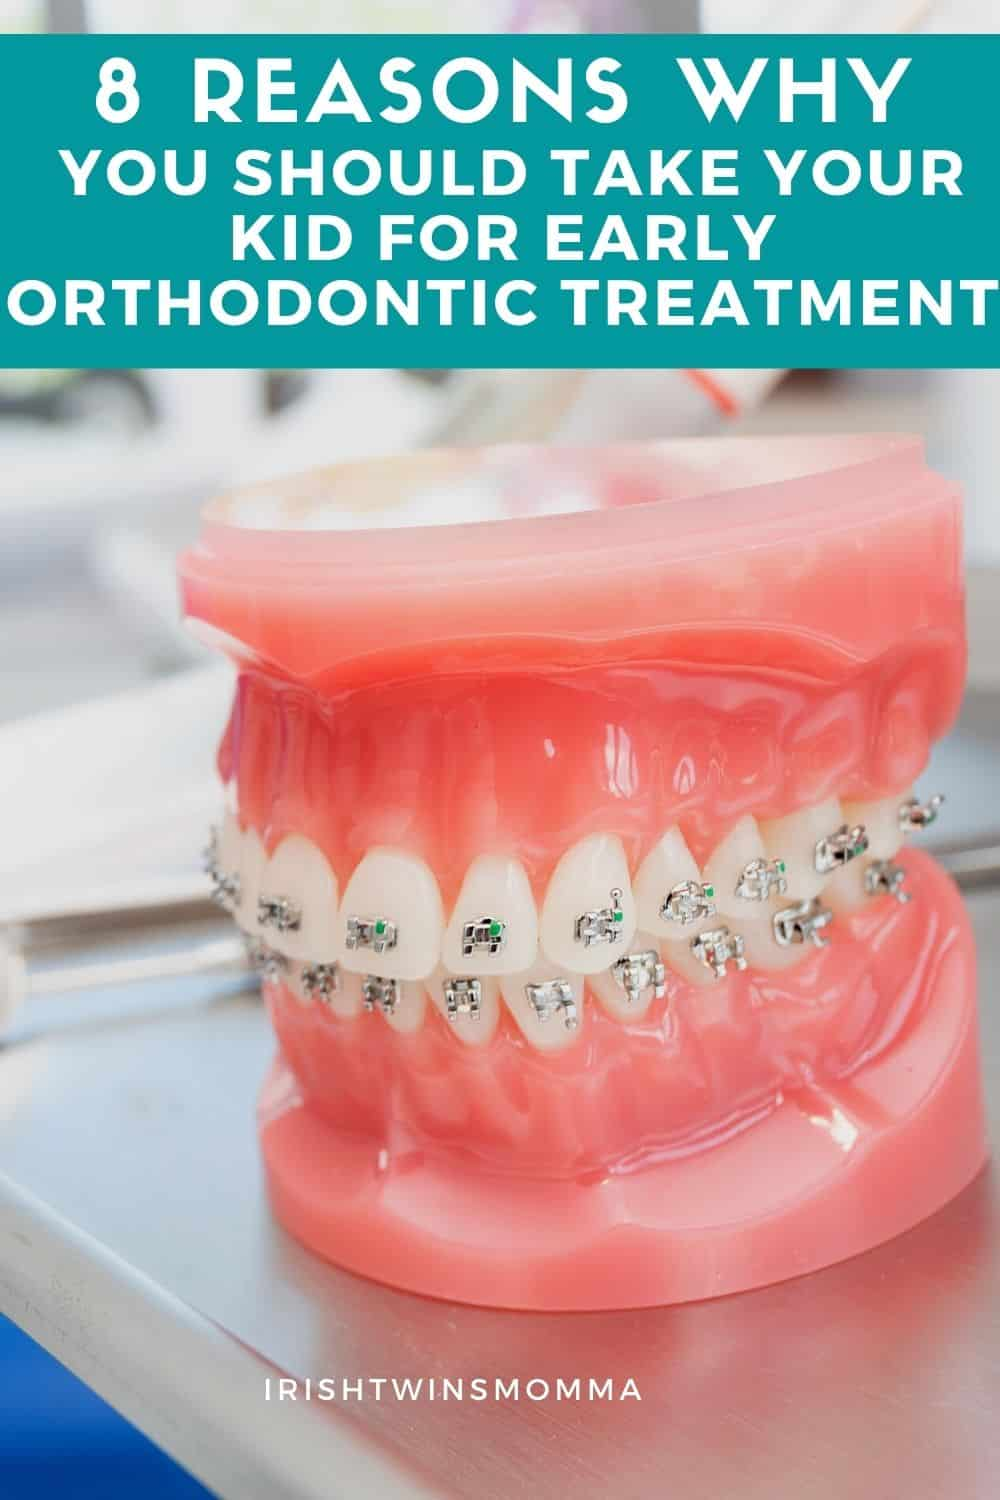 8 Reasons Why You Should Take Your Kid for Early Orthodontic Treatment